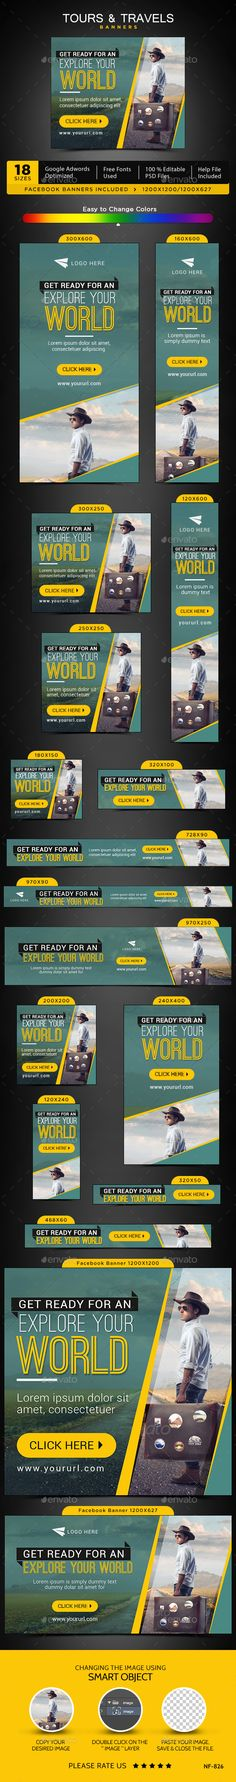 Tours & Travels Web Banners Template PSD #design #ads Download: http://graphicriver.net/item/tours-travels-banners/13845561?ref=ksioks